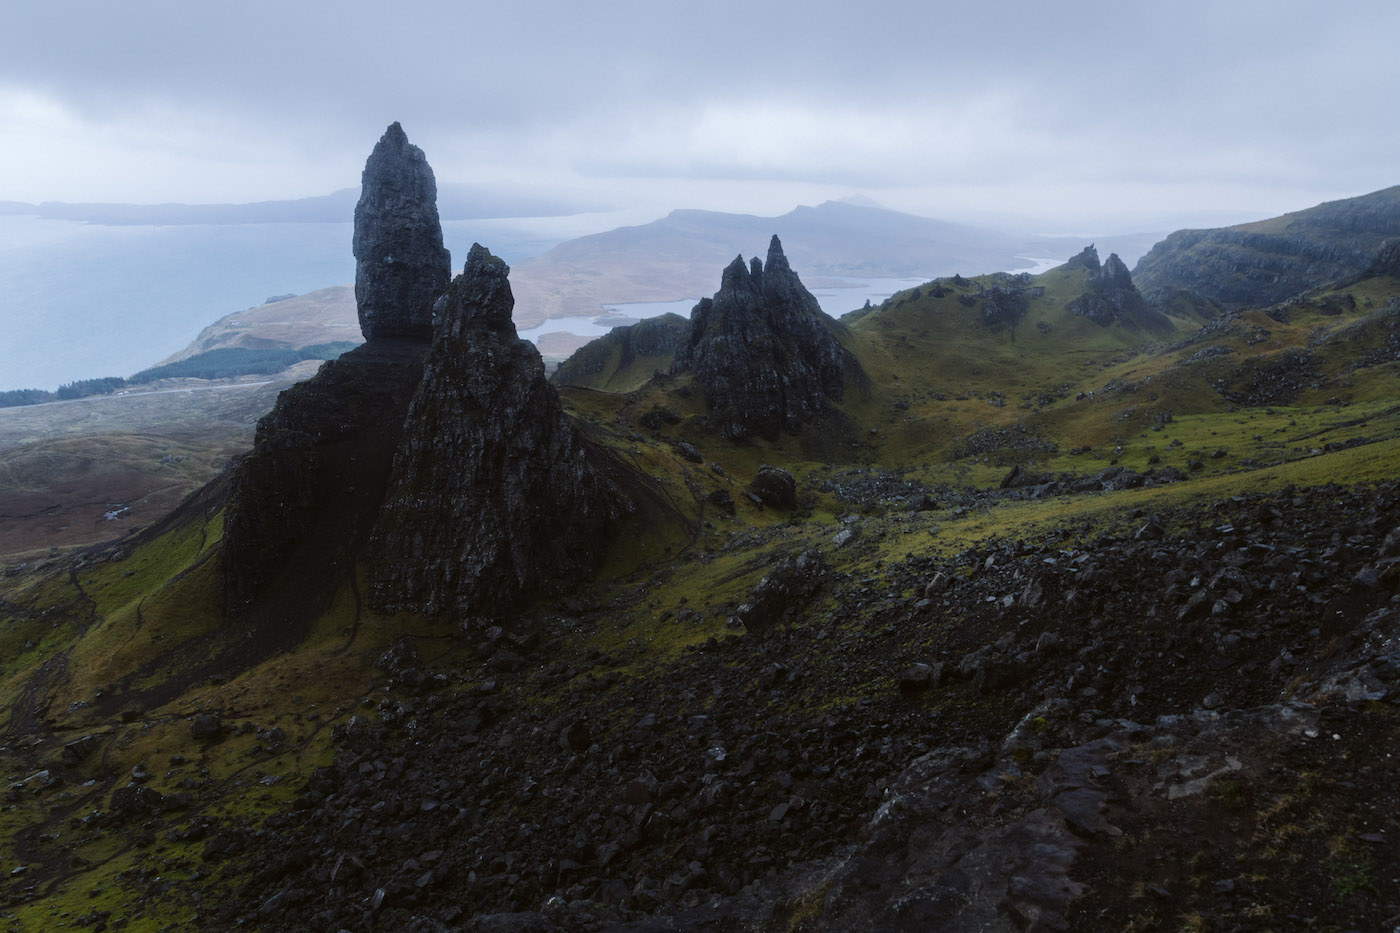 Roadtrip schotland kamperen Old man of Storr